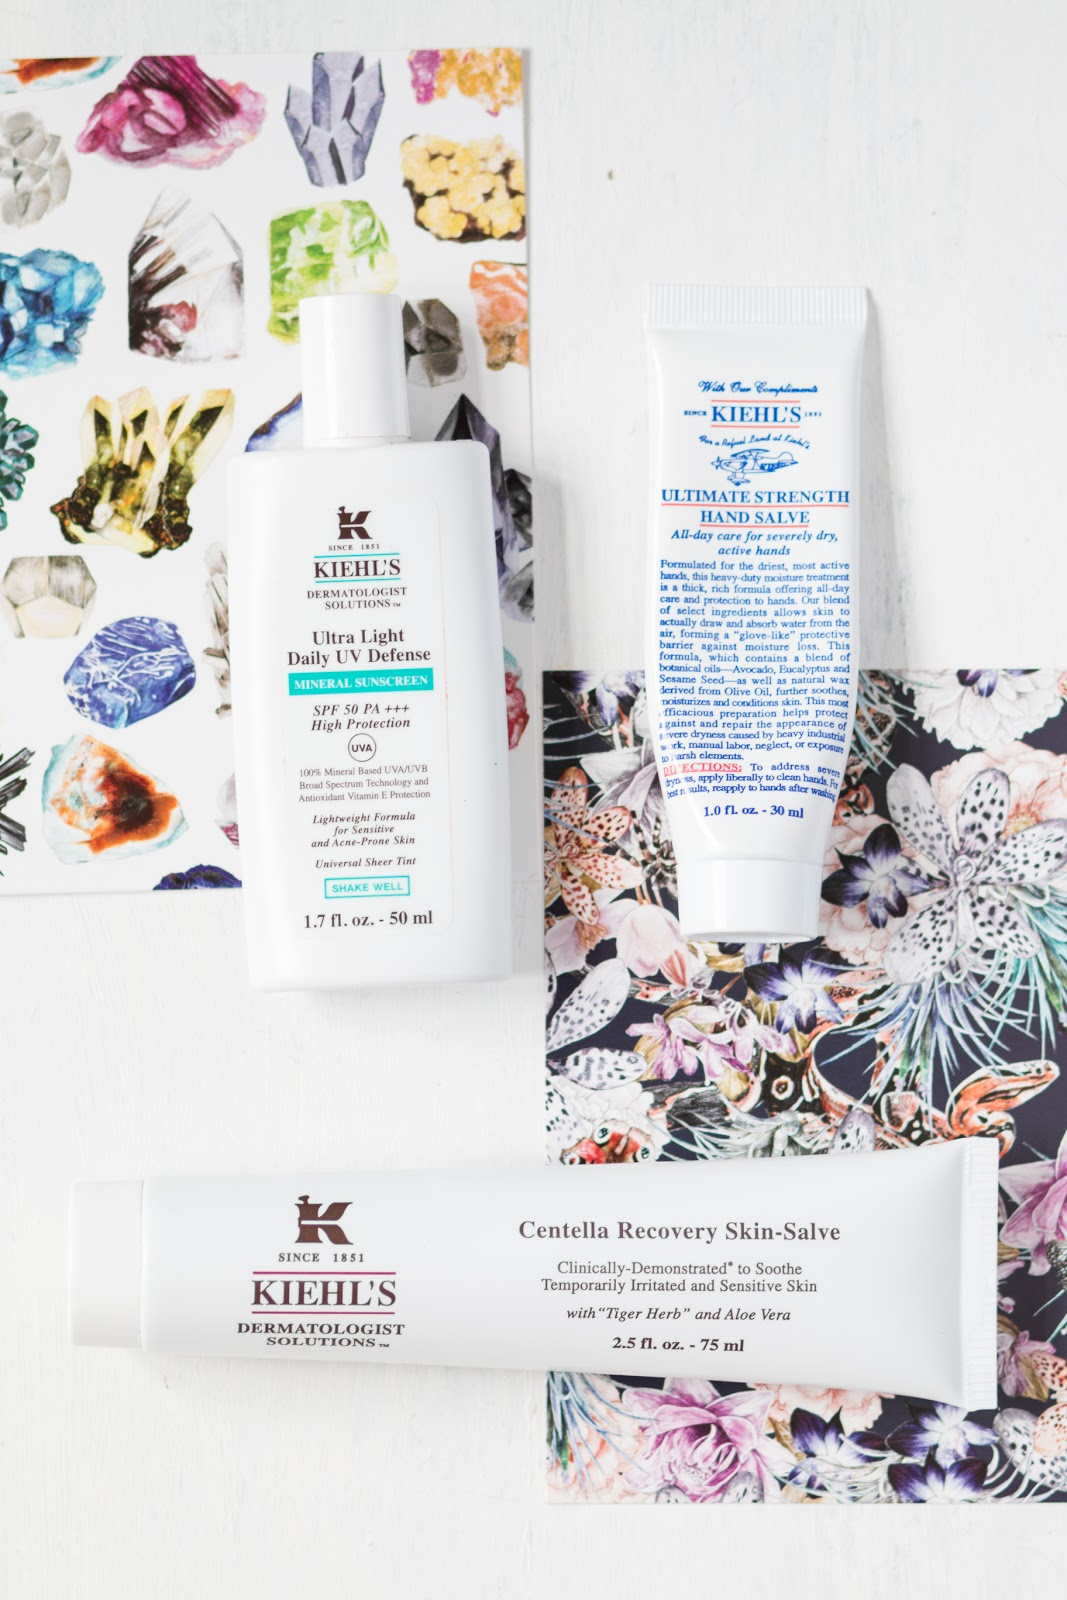 A LOVE AFFAIR WITH KIEHLS